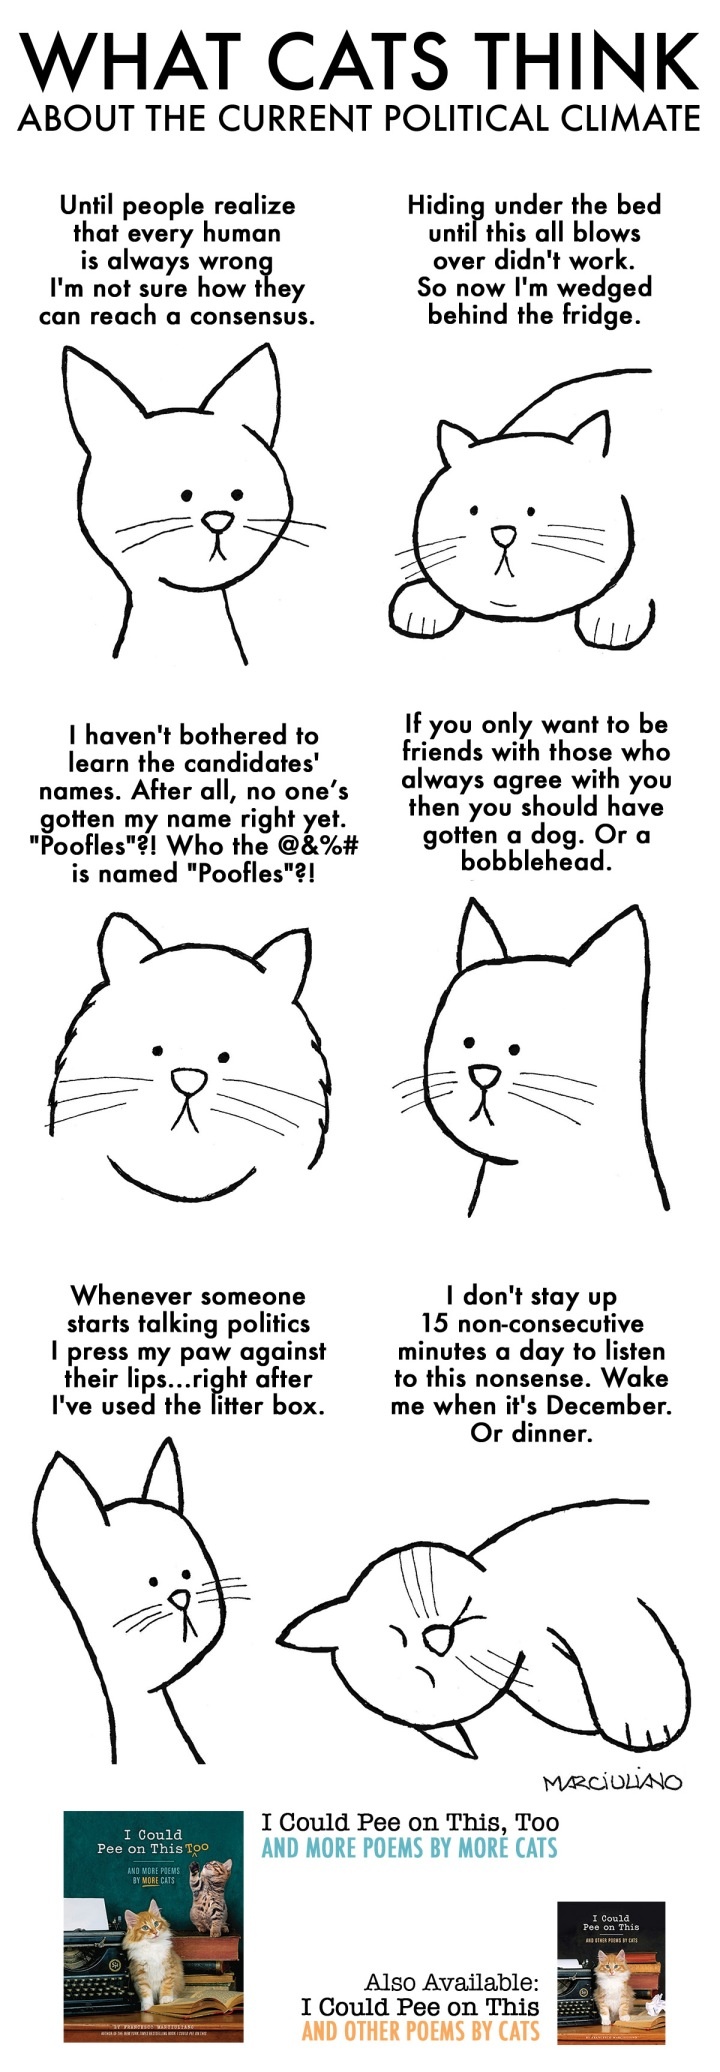 Cats Political Climate Promo